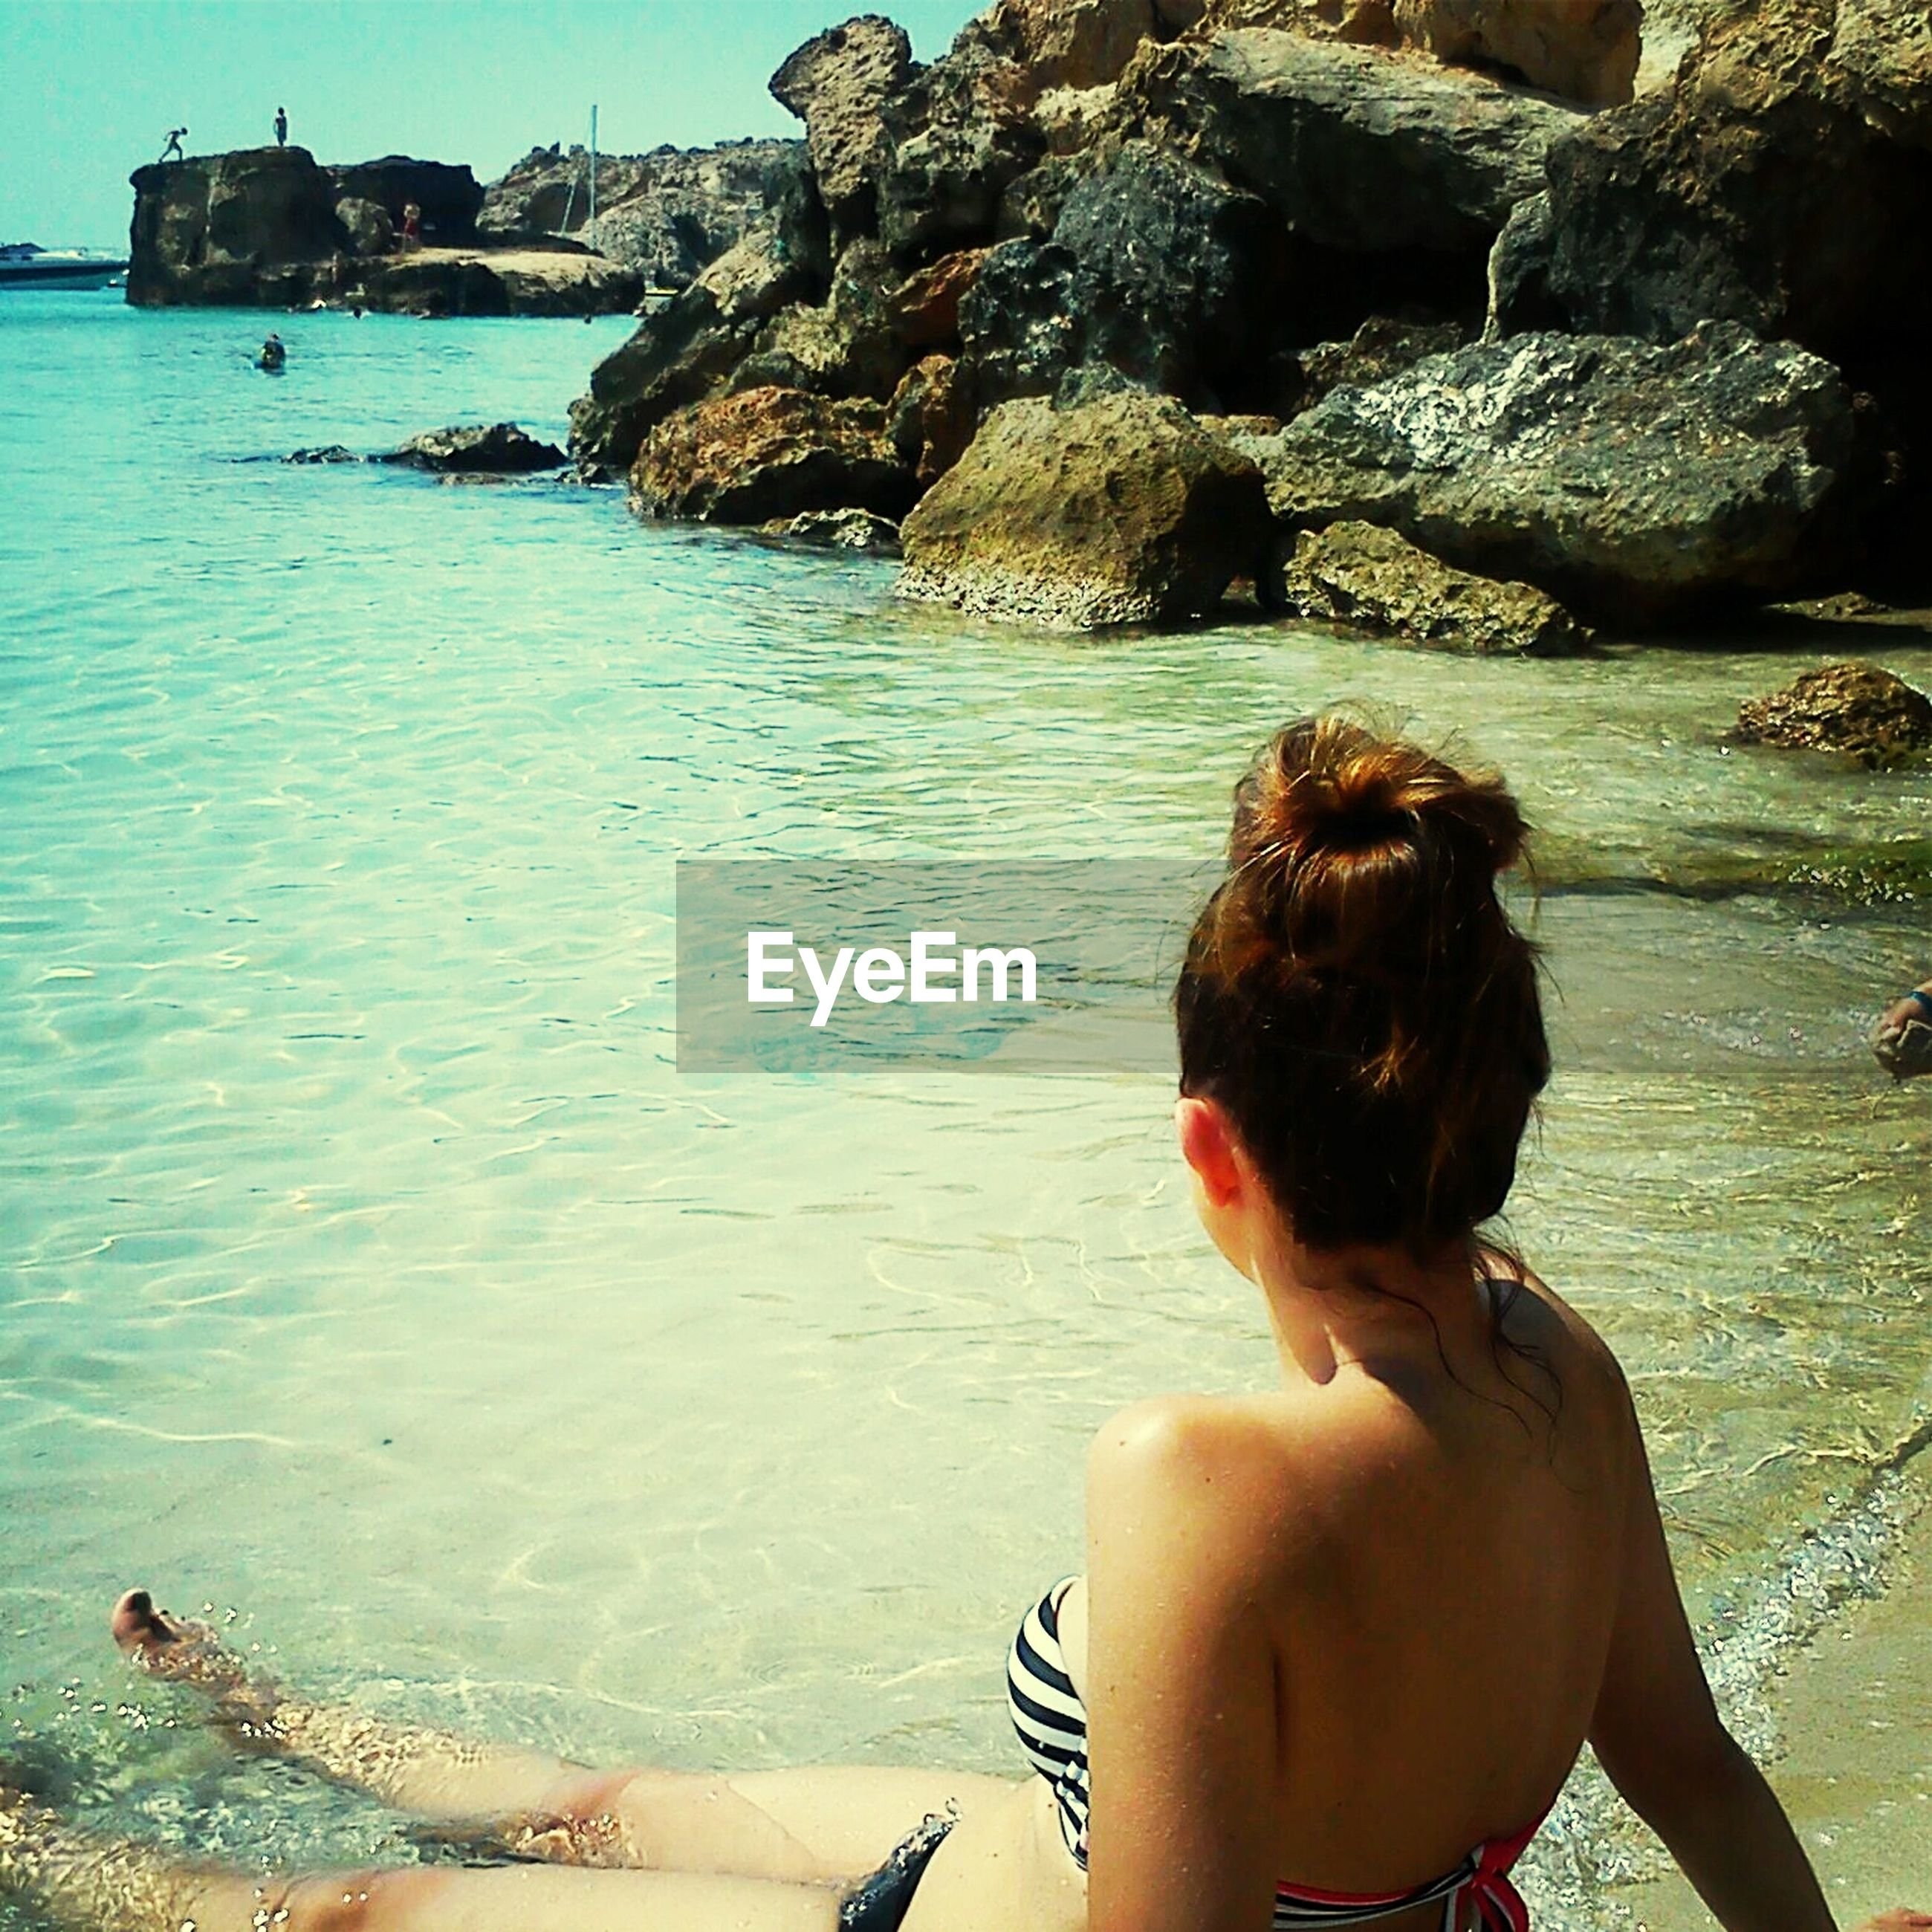 water, sea, lifestyles, leisure activity, beach, vacations, person, shore, young adult, rear view, young women, shirtless, rock - object, weekend activities, sunlight, bikini, tourist, scenics